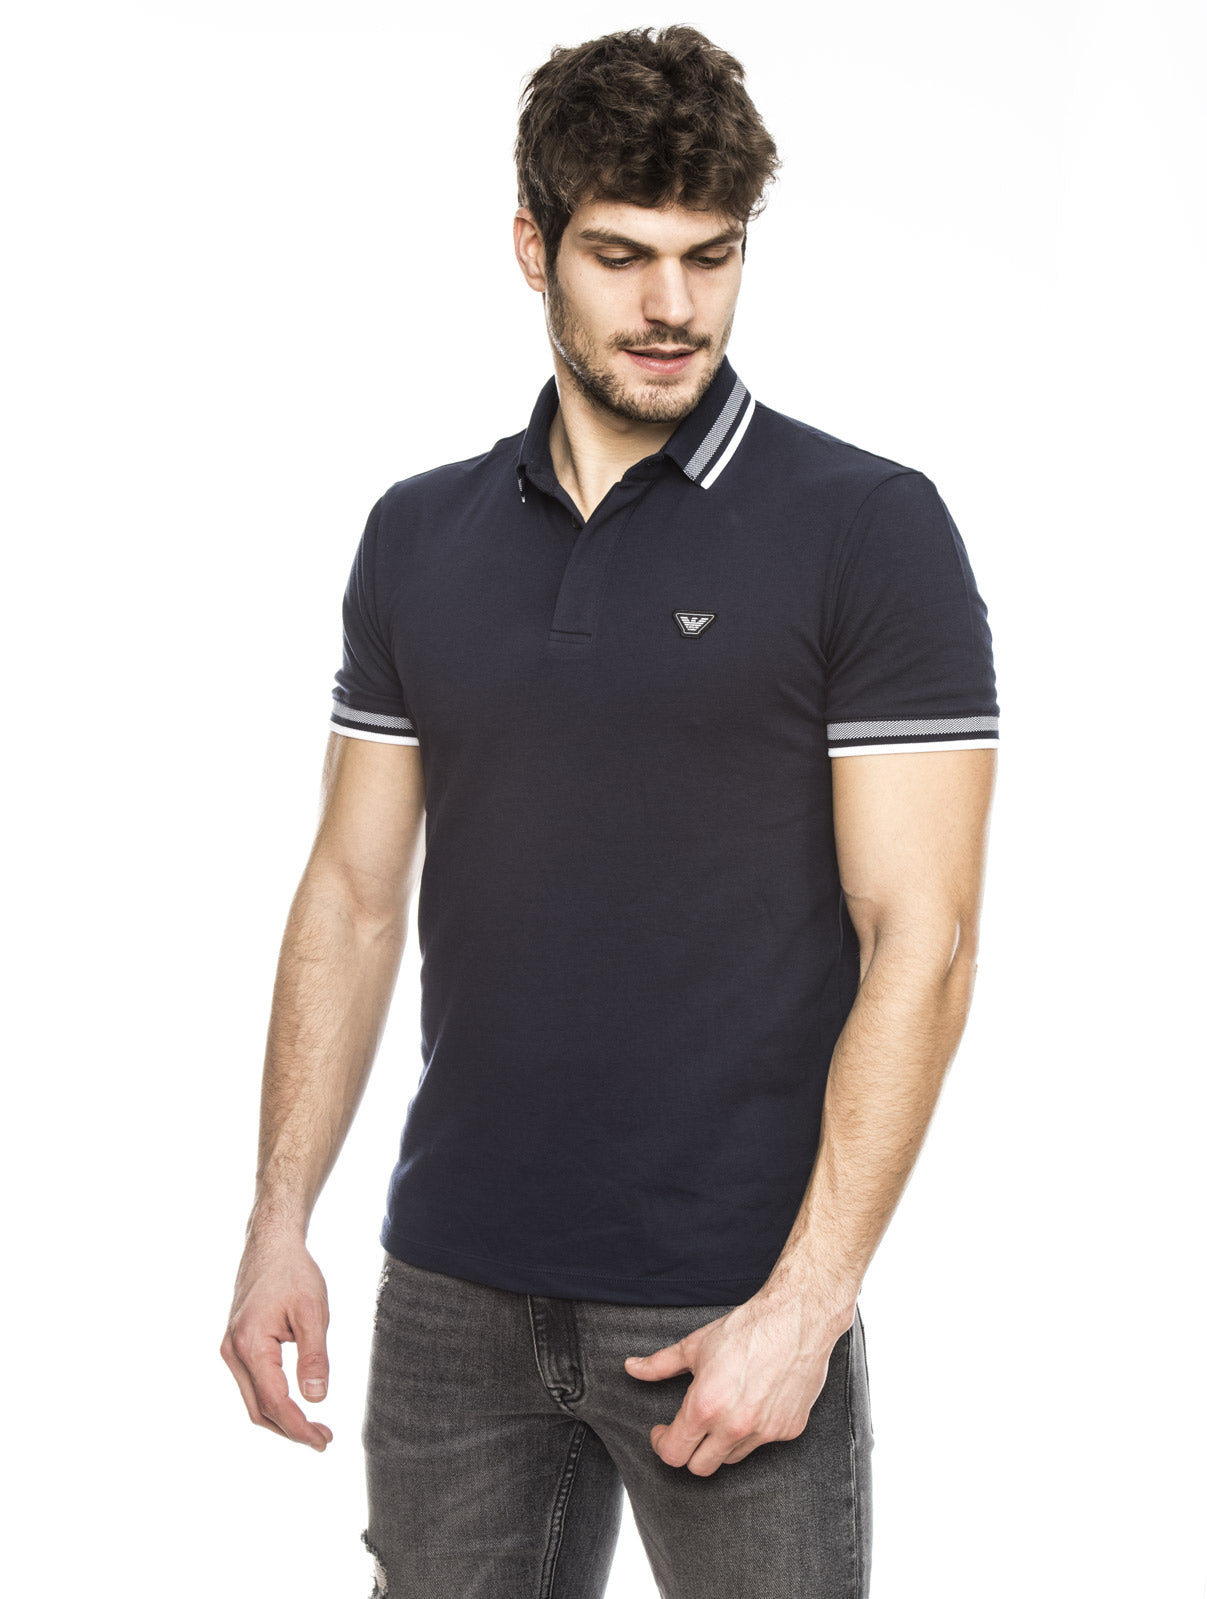 MAN JERSEY POLO IN INDIGO BLUE